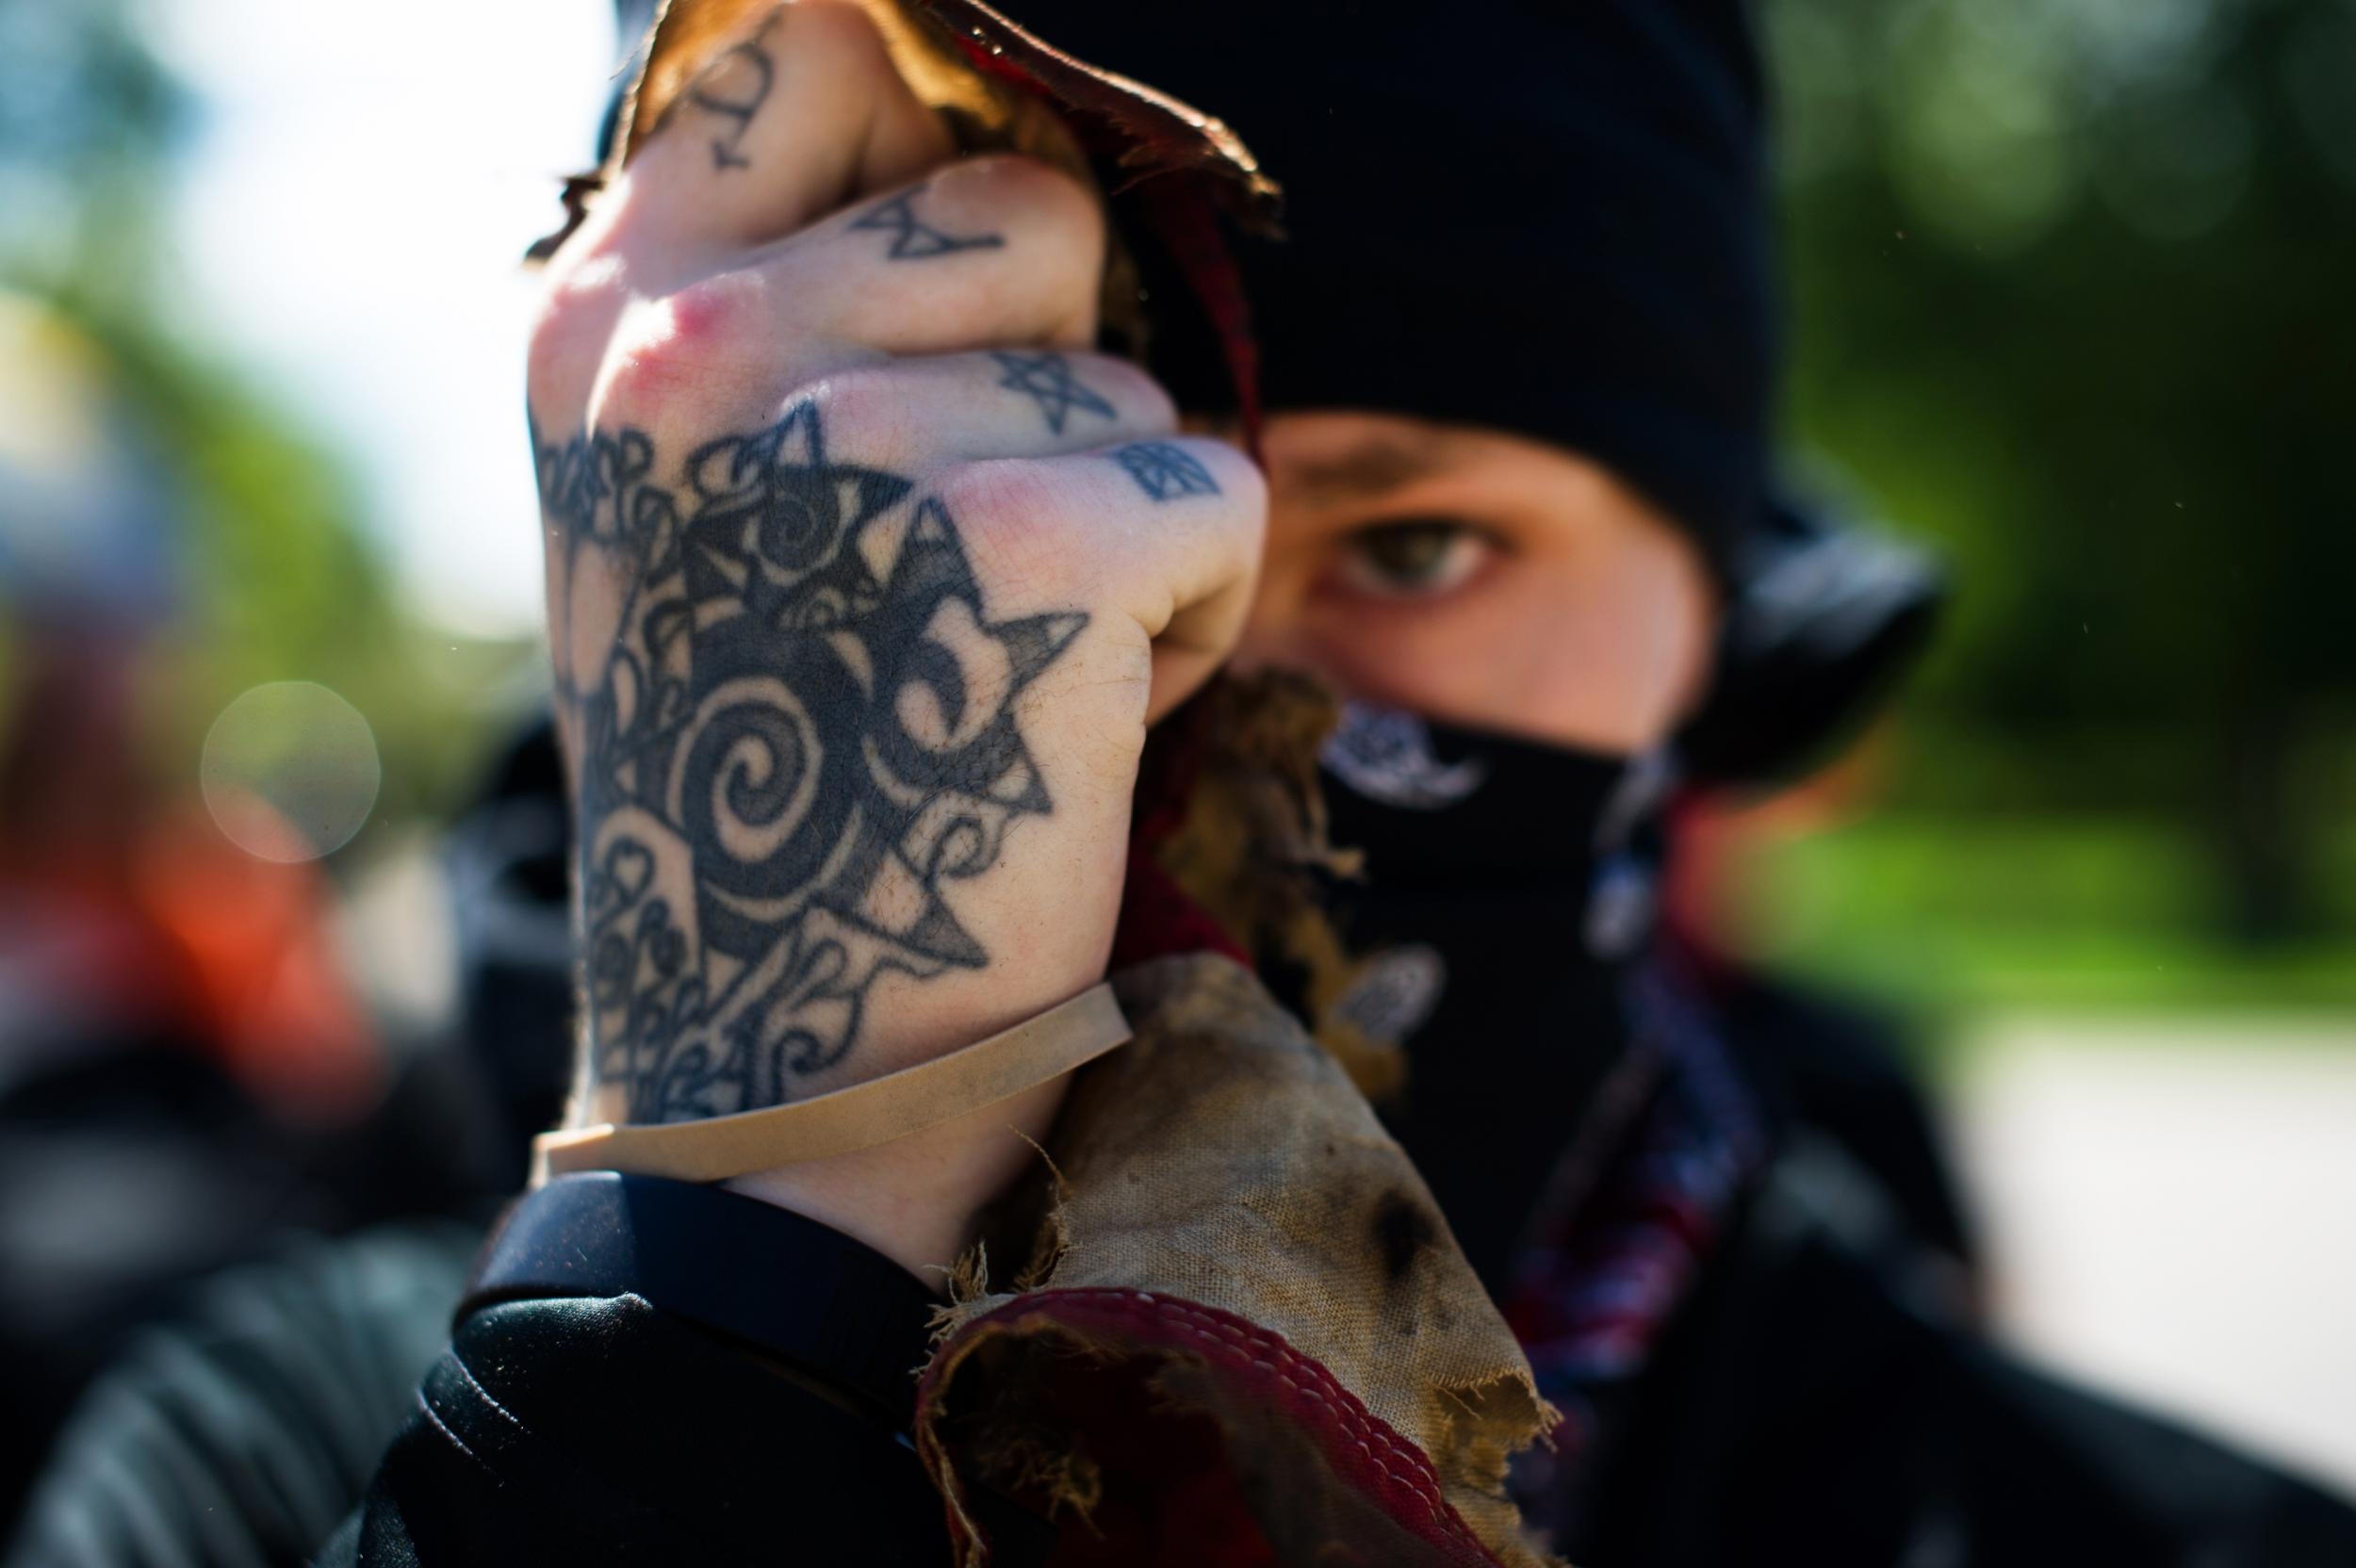 'Unmasking Antifa Act': Proposed US law could send masked anti-fascist activists to prison for 15 years